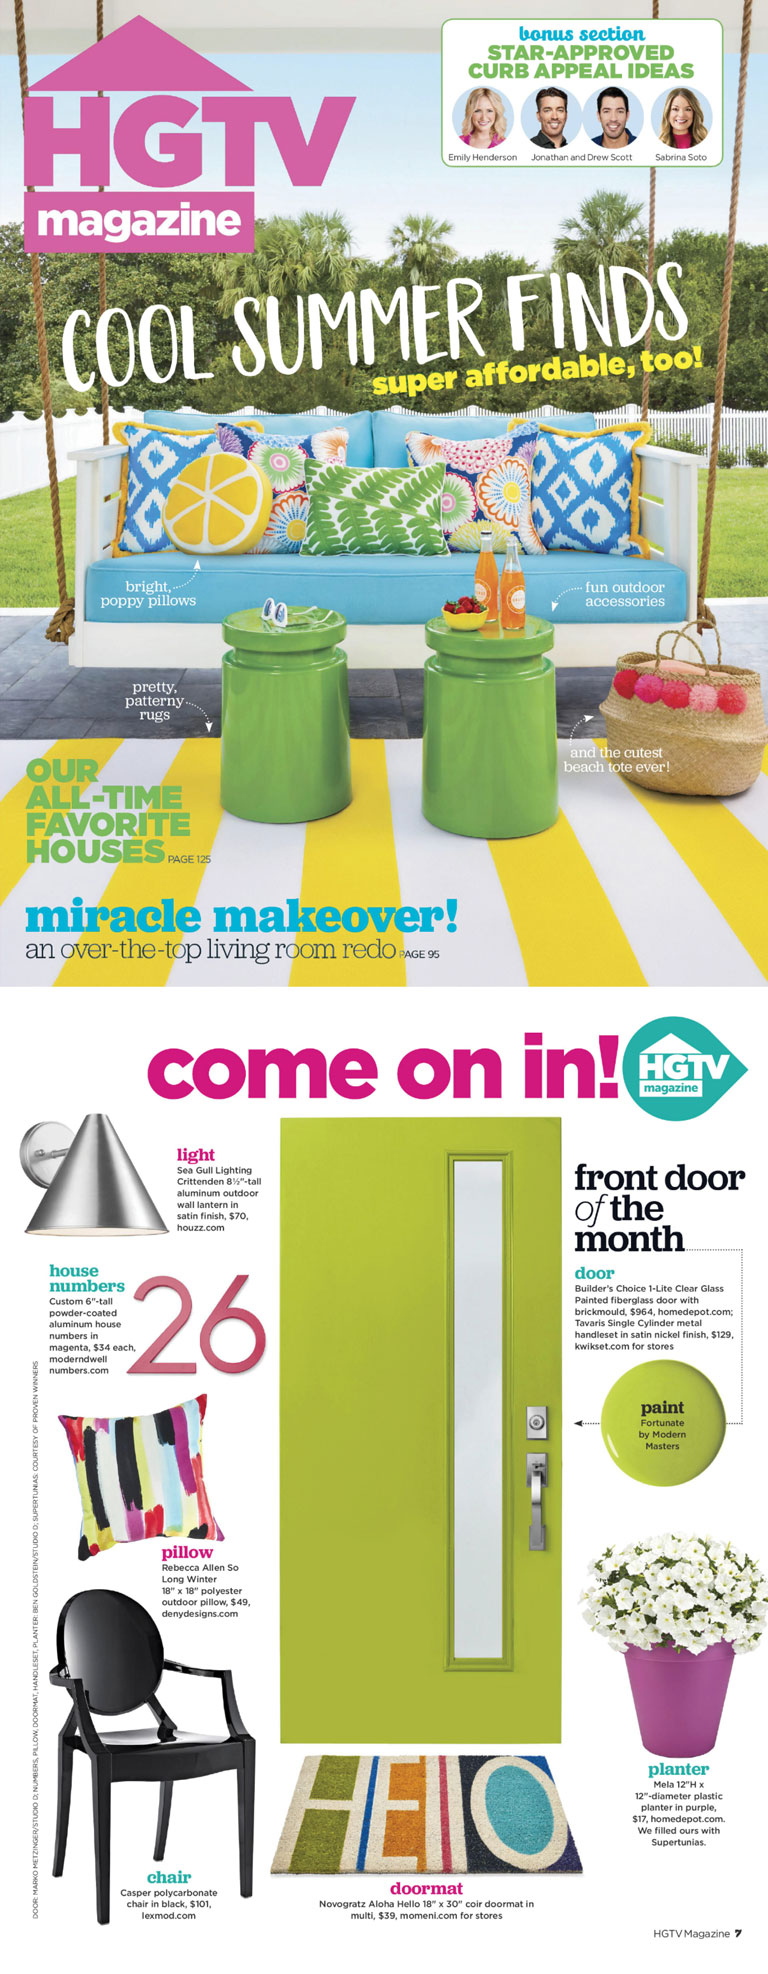 HGTV Magazine | Cool Summer Finds